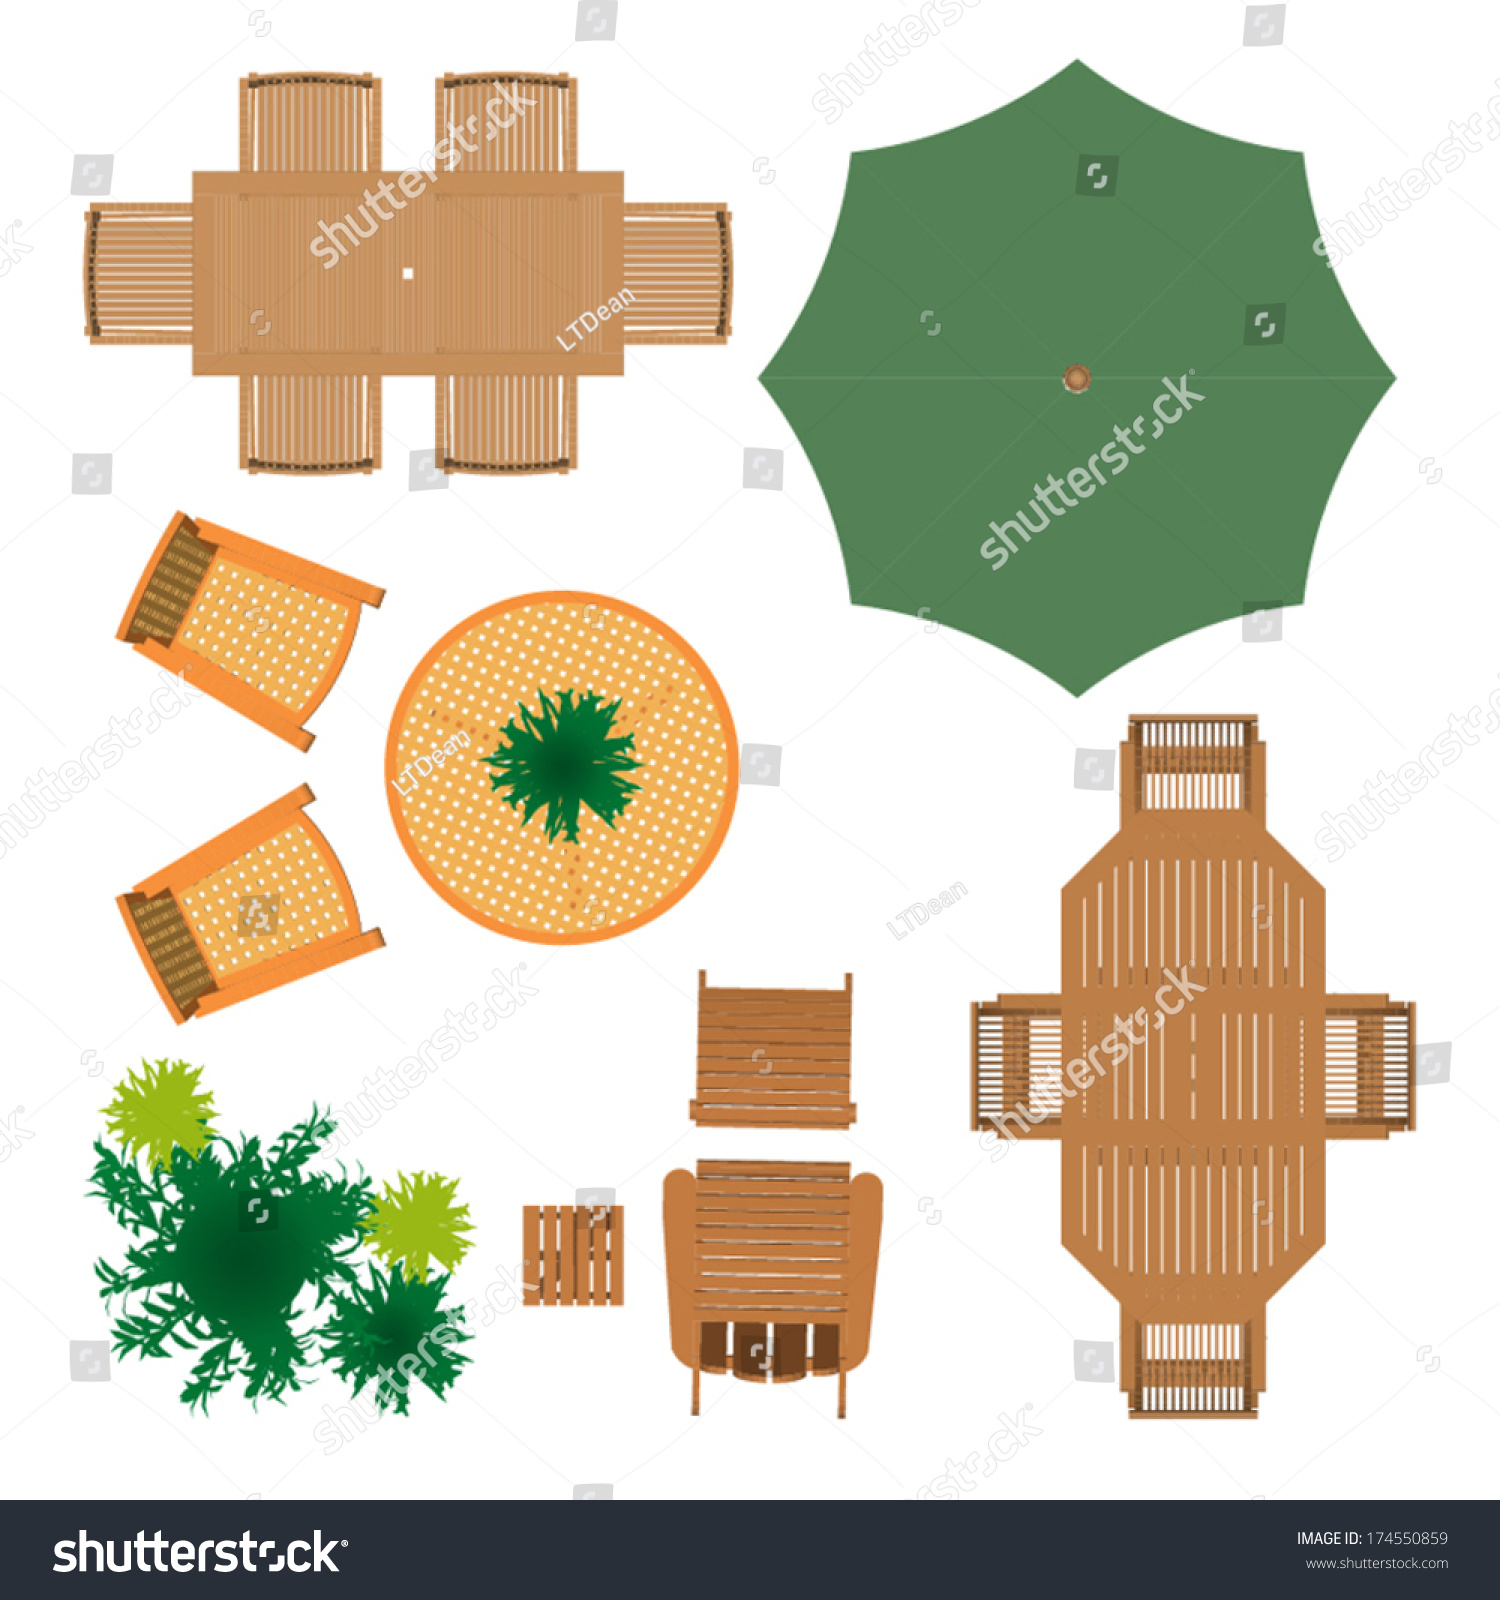 images garden furniture top view psd - Garden Furniture Top View Psd